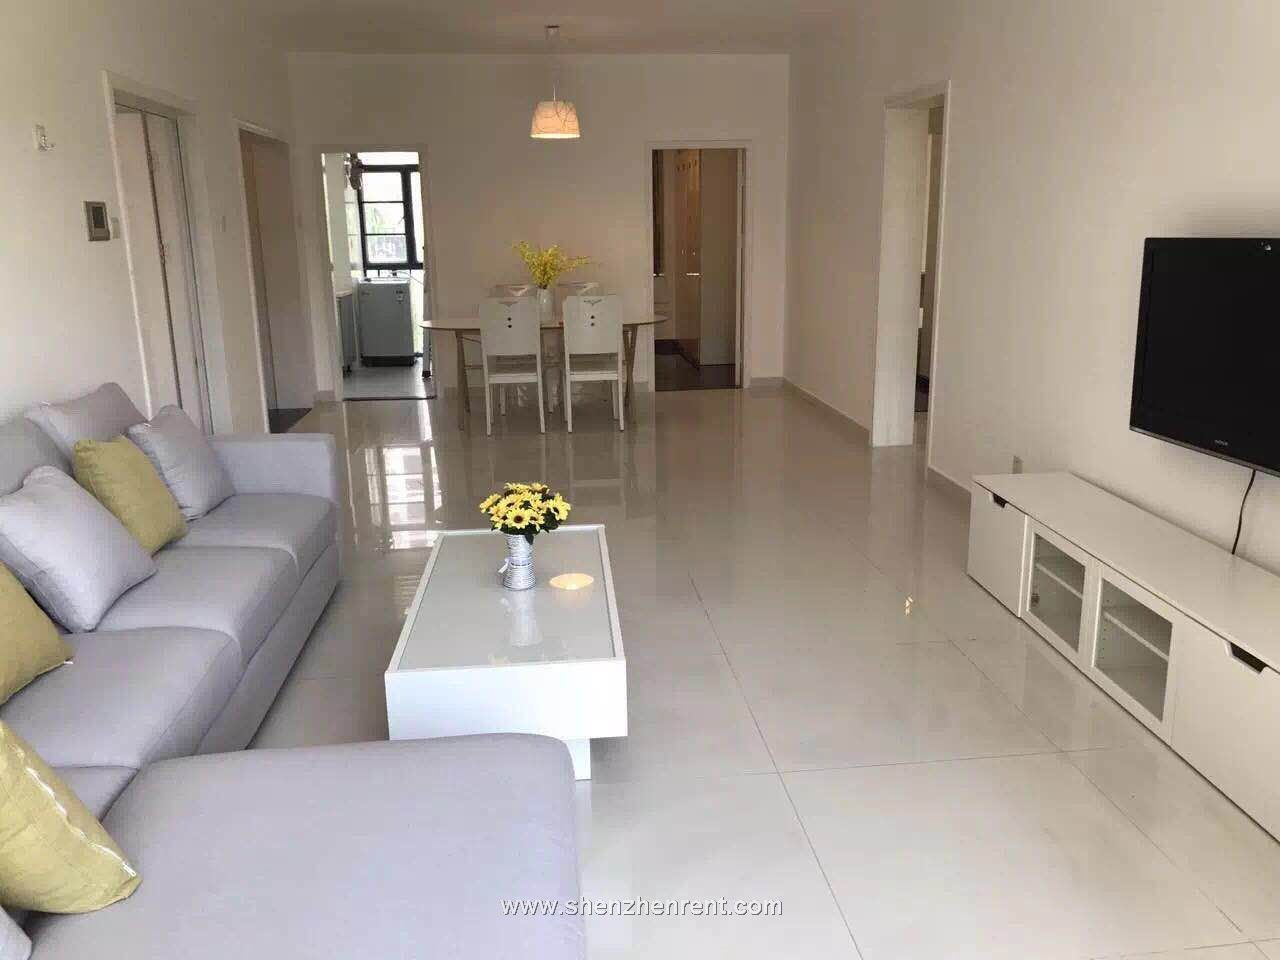 Nice 3 bedrooms apartment in shekou for rent